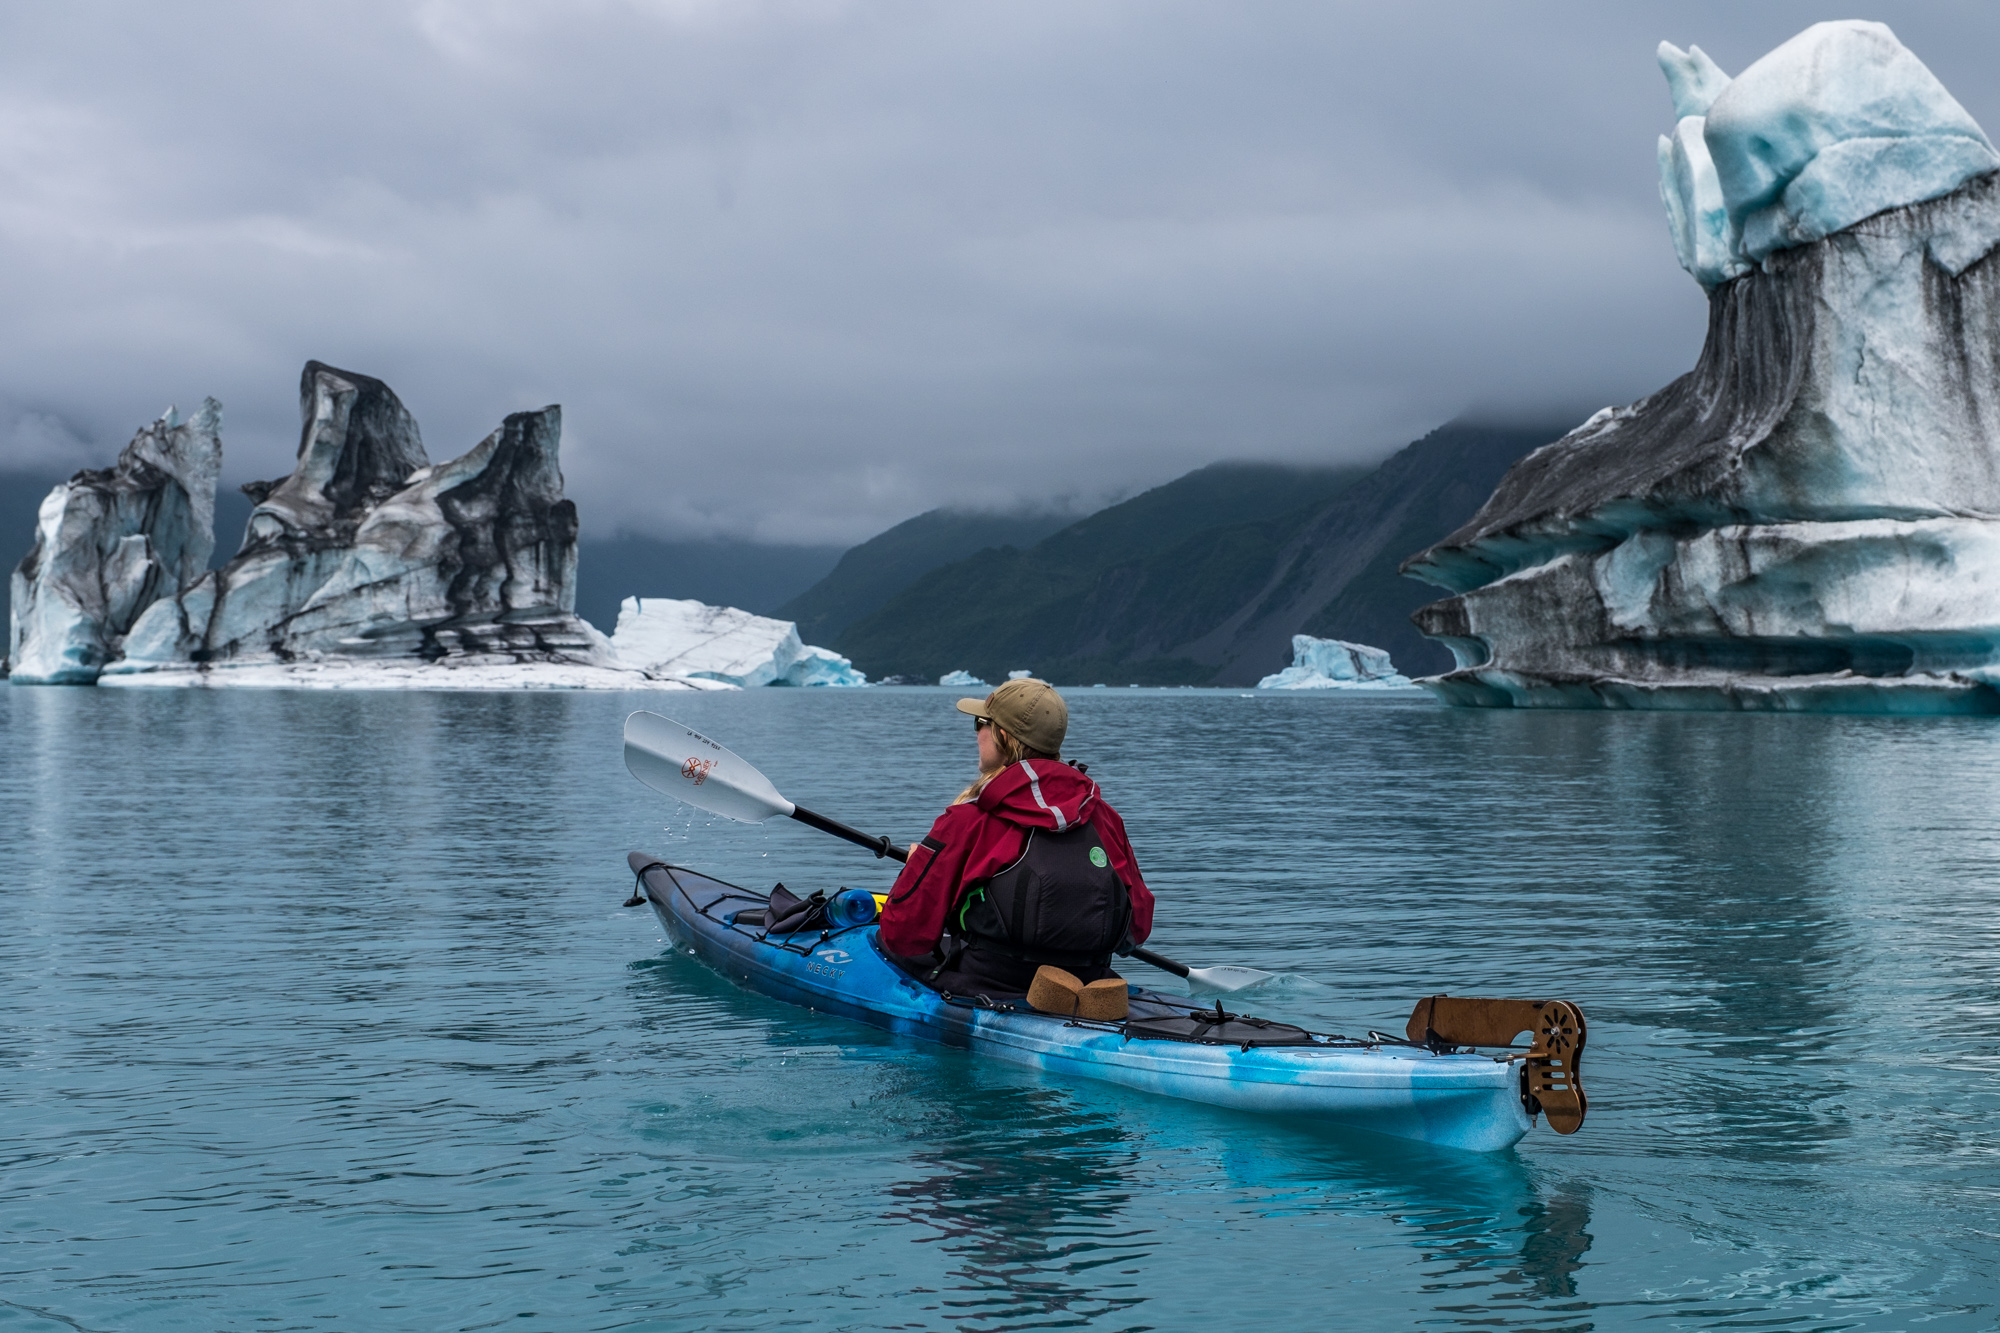 Kayaking among these interesting ice formations was surreal.